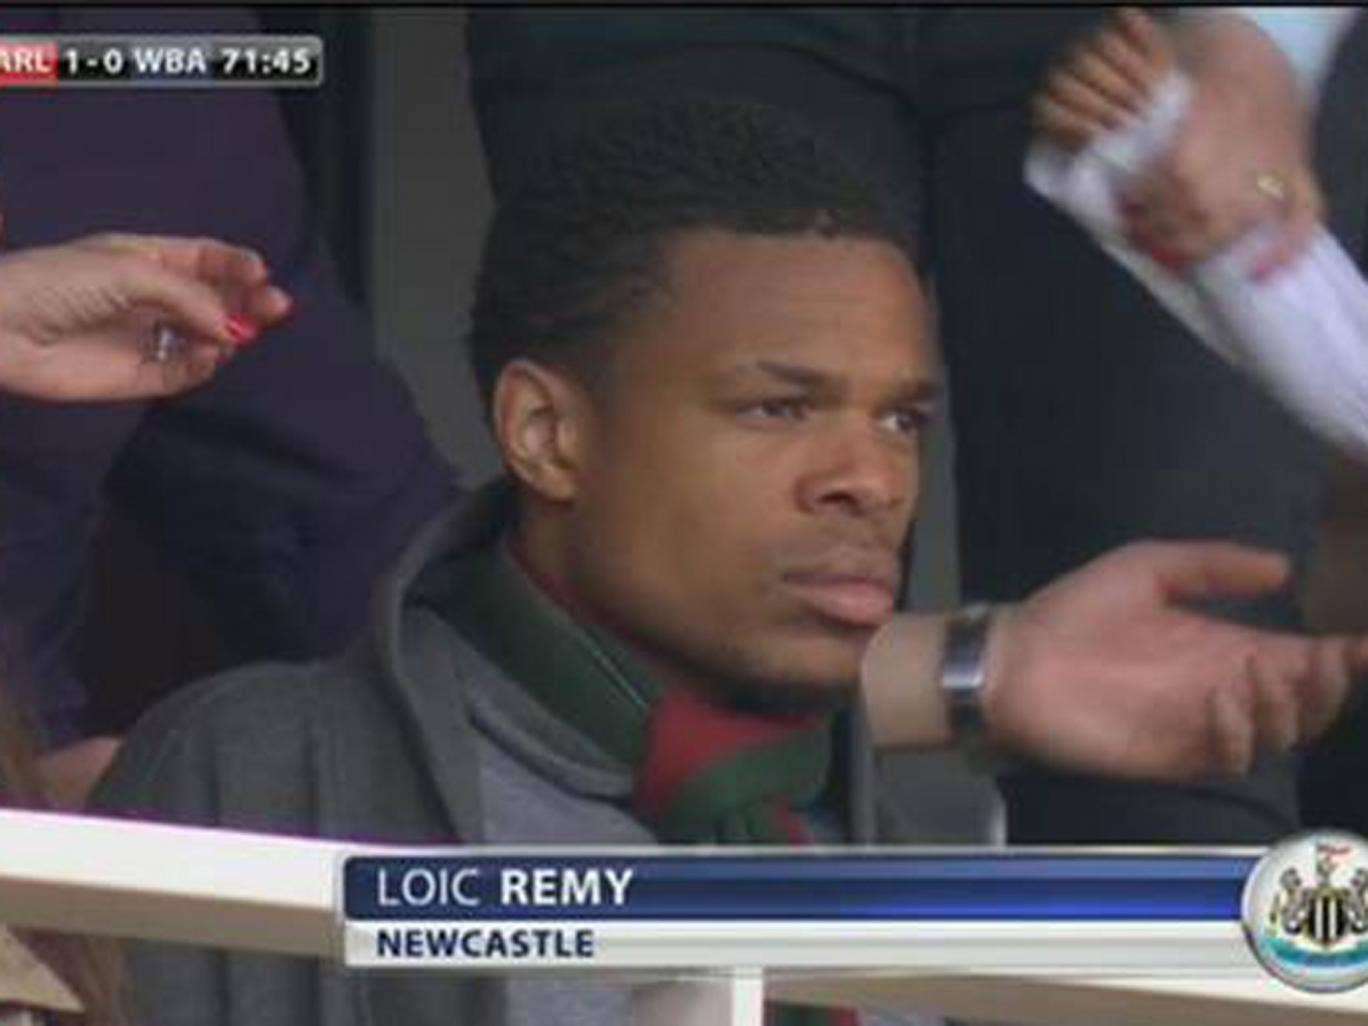 Loic Remy in the stands at the Emirates Stadium